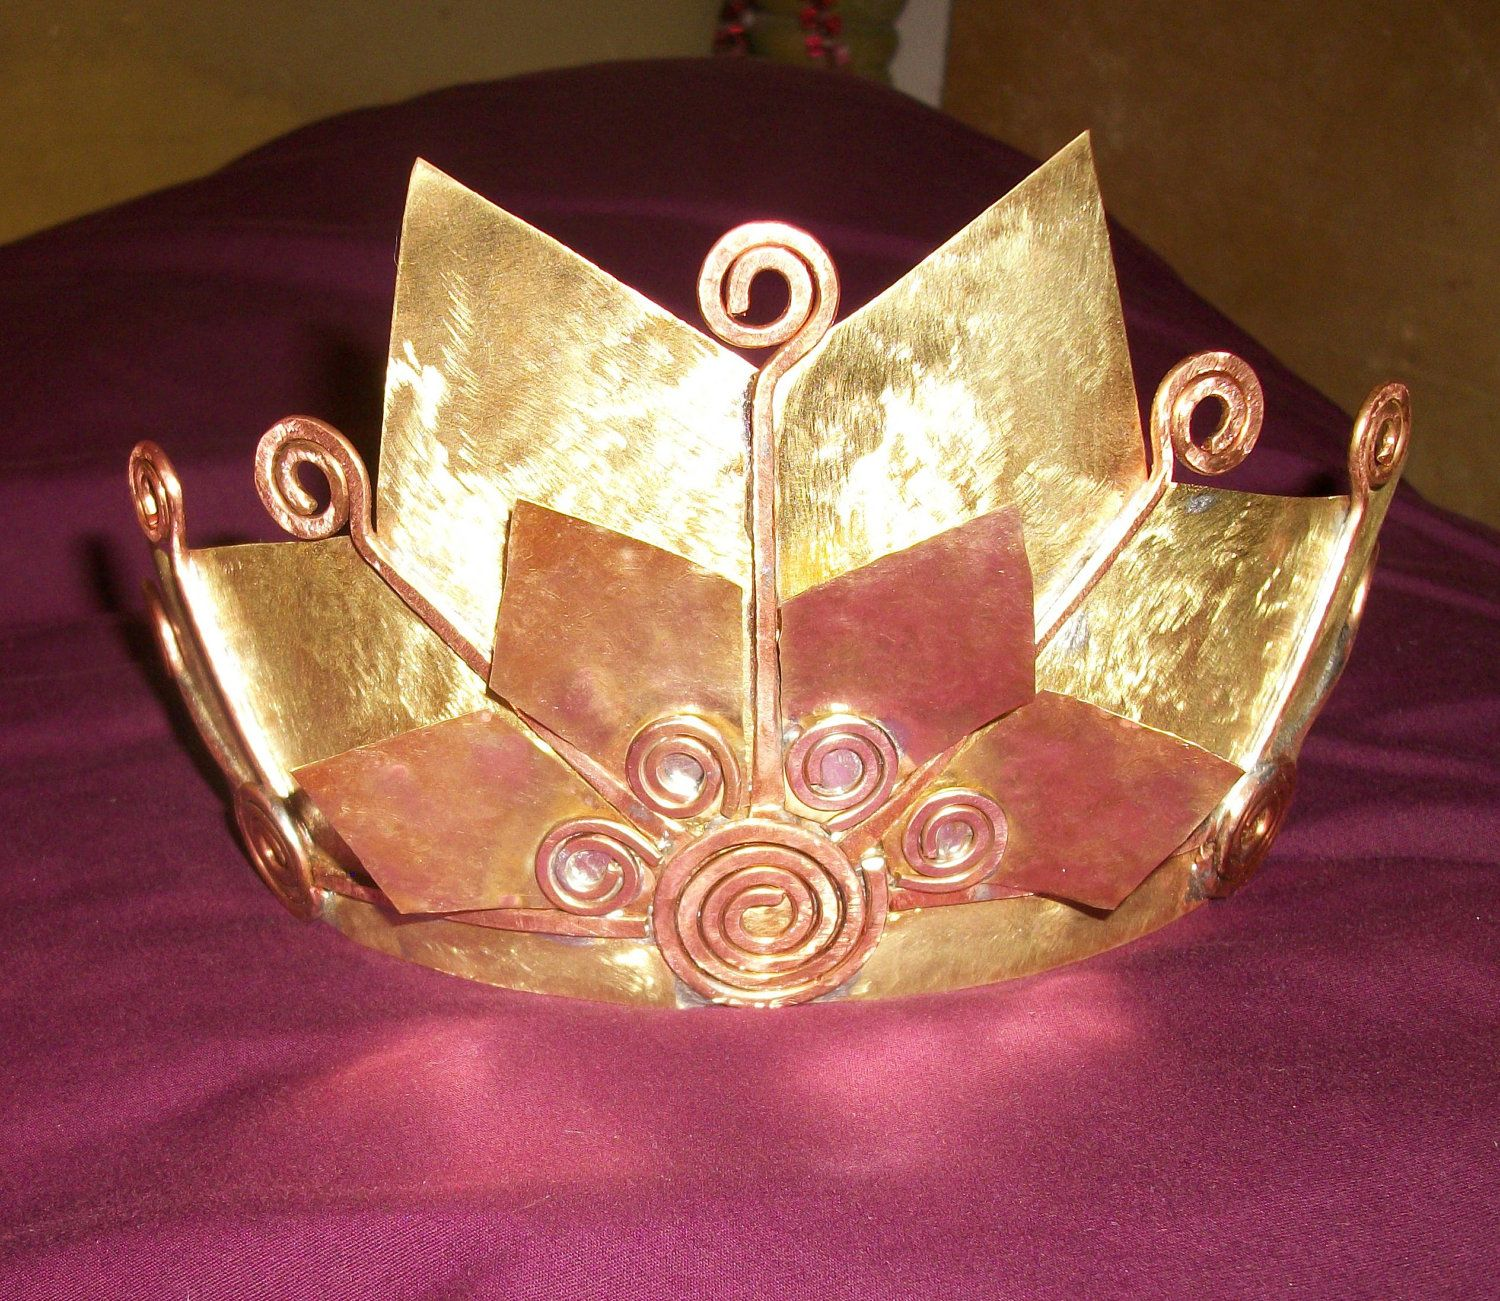 Pin By Perlsstudio On Inspirasi Jools Headpcs Accessories Tiaras And Crowns Copper Accents Handmade